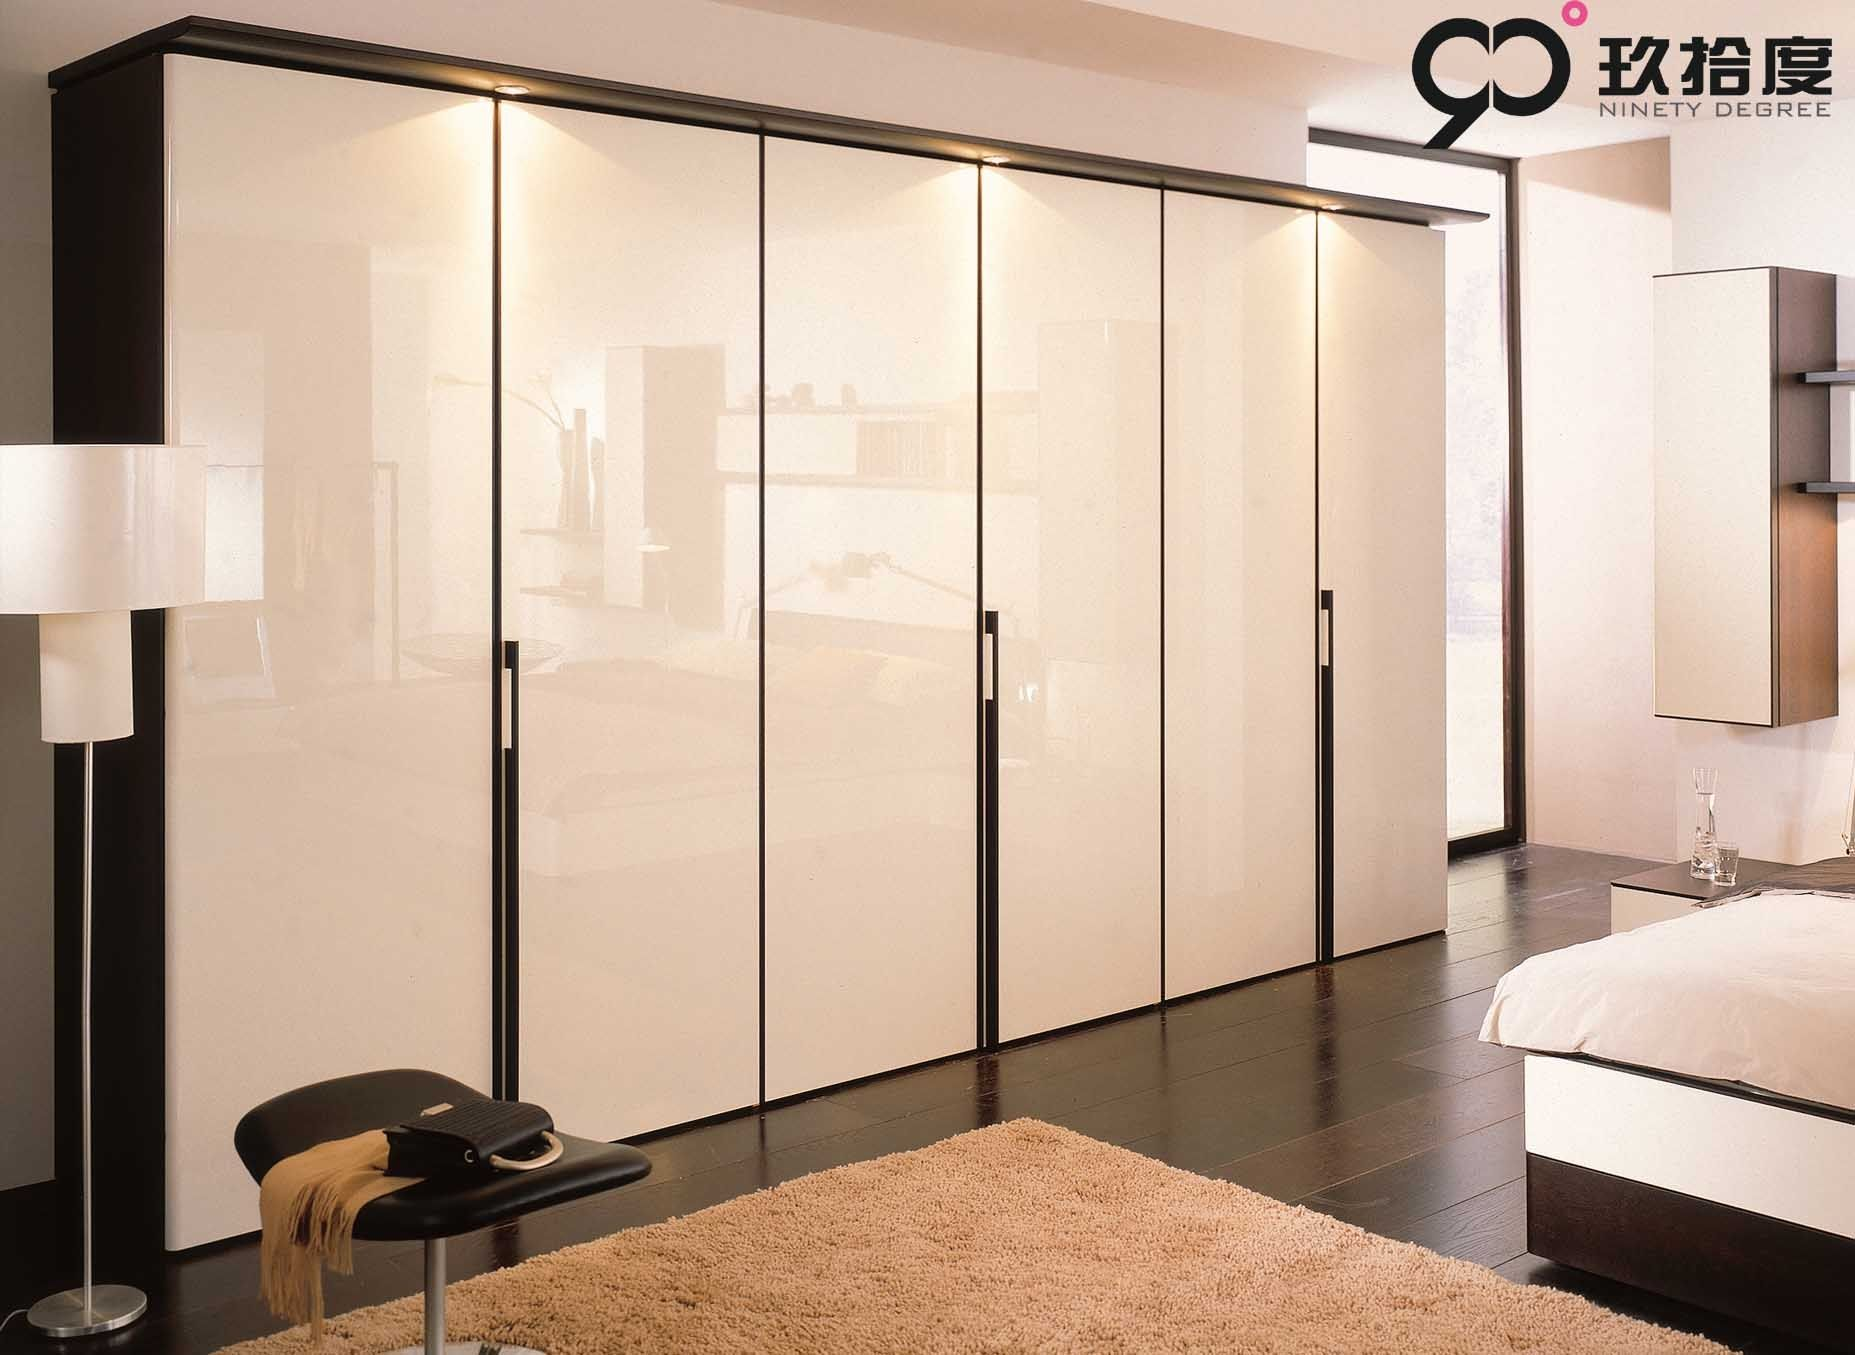 Best Bedroom Lavish White High Gloss Wardrobe Design Polished 400 x 300